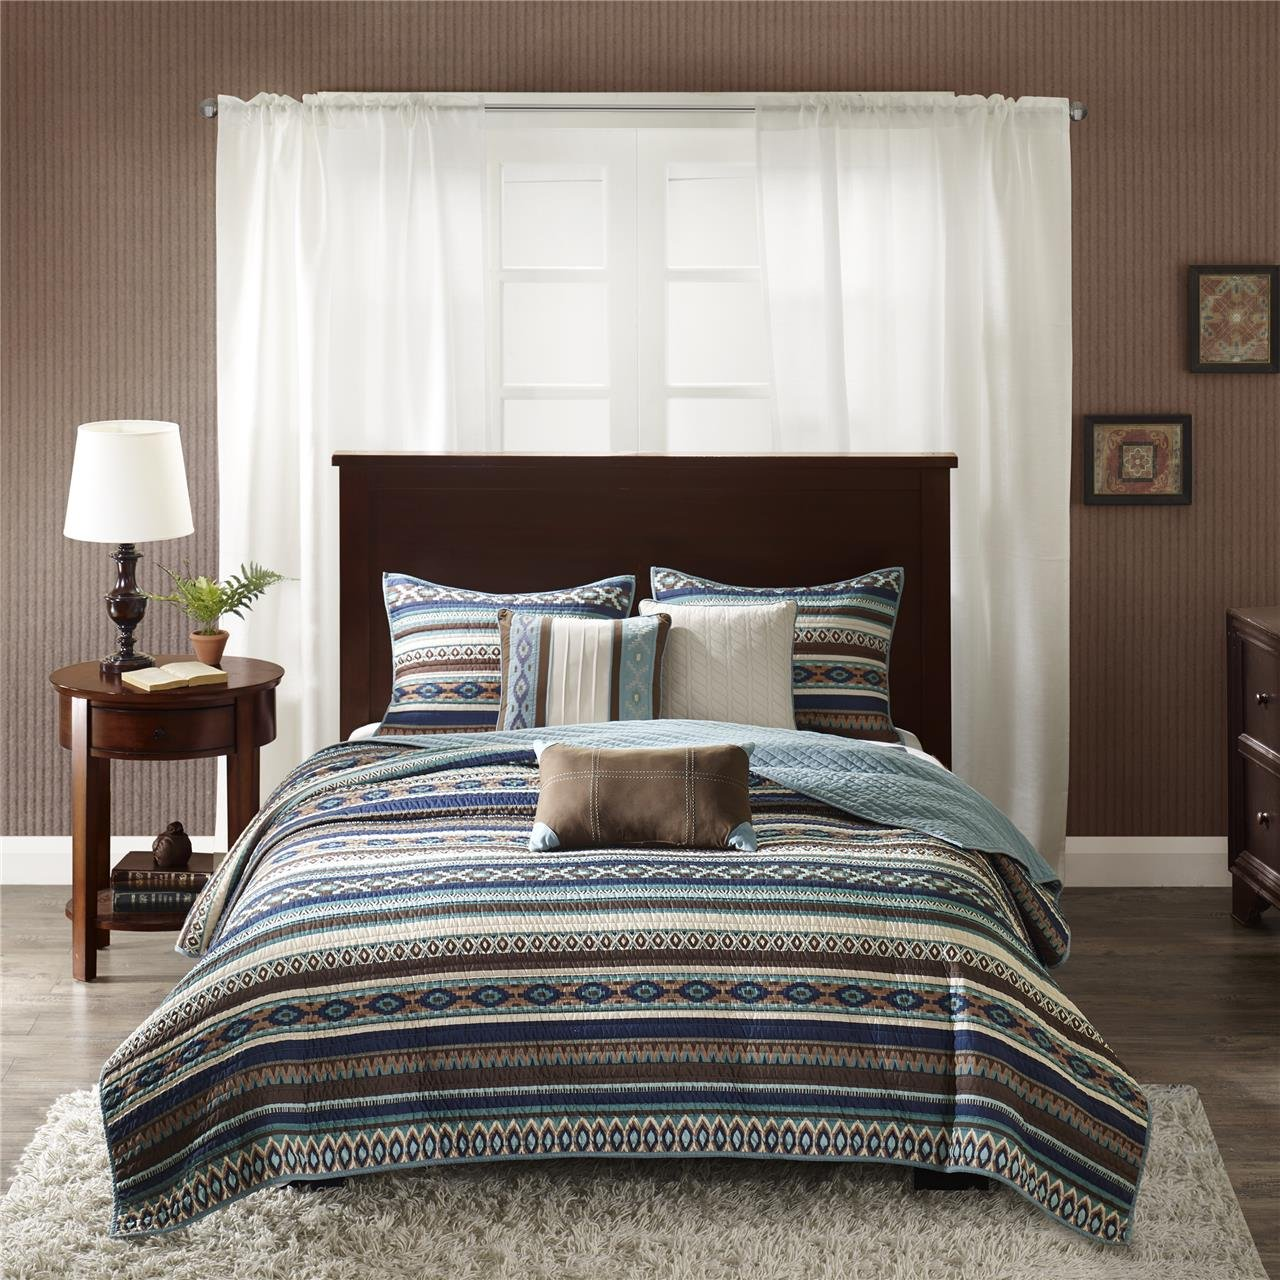 Madison Park Malone Full/Queen Size Quilt Bedding Set - Blue, Brown, Southwestern Pattern, Fair Isle – 6 Piece Bedding Quilt Coverlets – Micro Herringbone Fabric Bed Quilts Quilted Coverlet